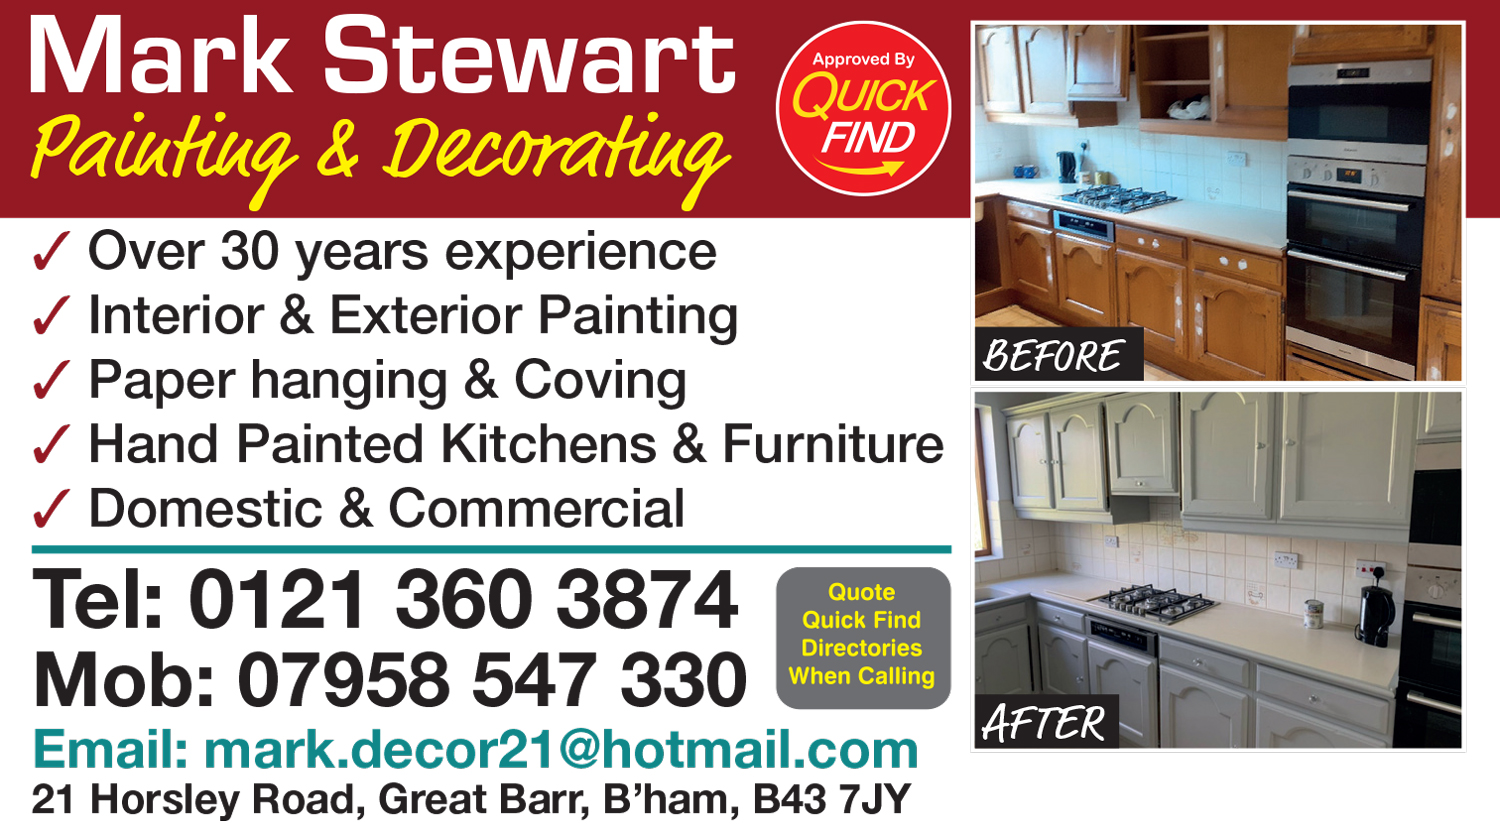 Mark Stewart Painting and Decorating